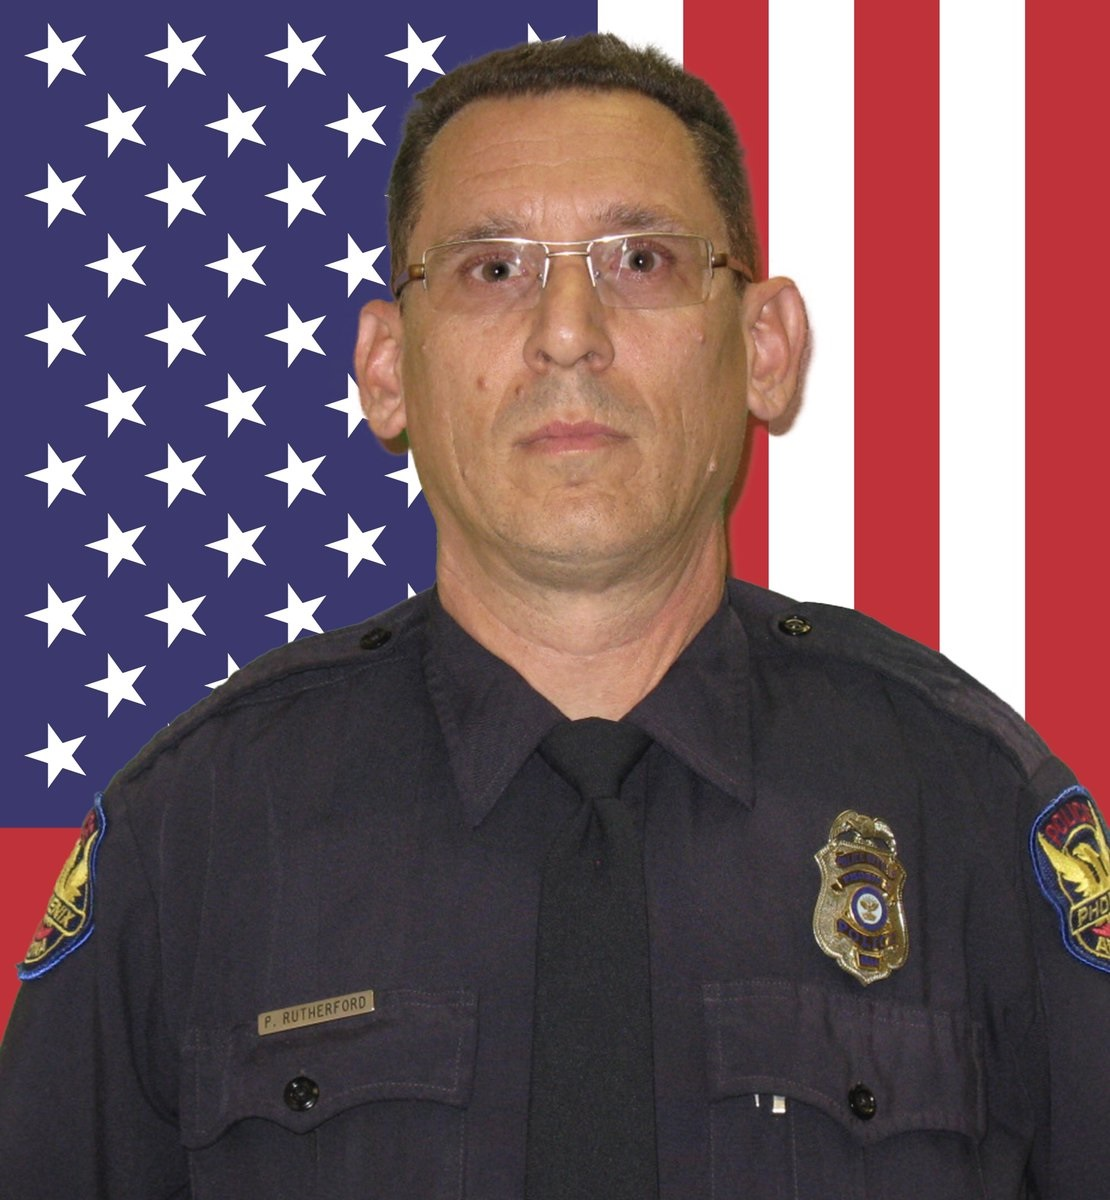 Police Officer Paul Thomas Rutherford | Phoenix Police Department, Arizona